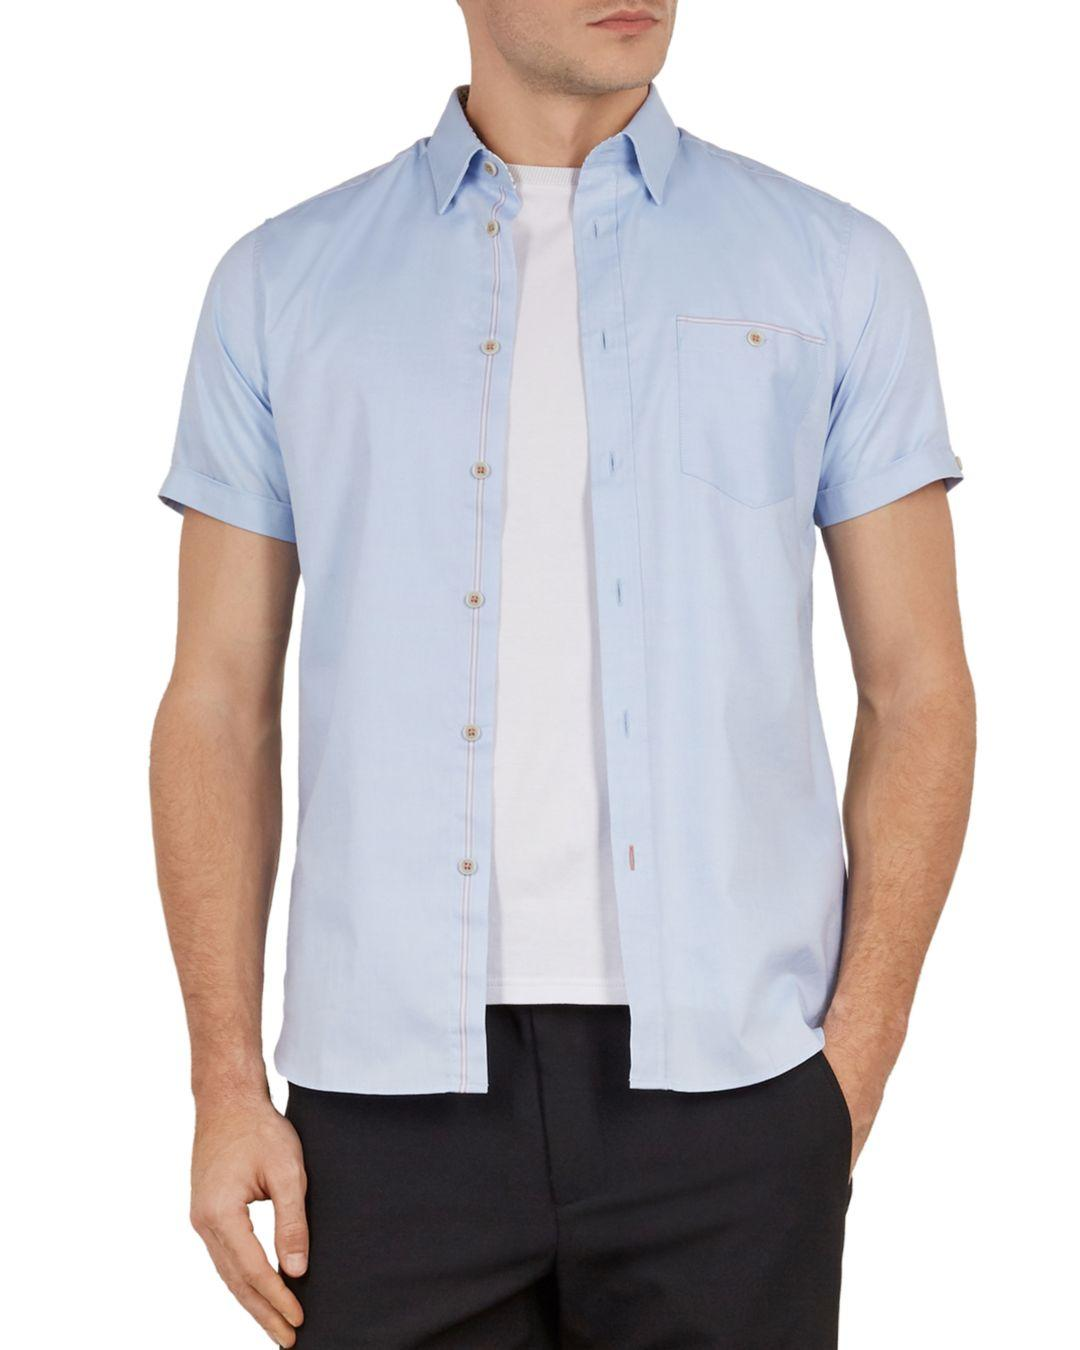 6a4819132 Lyst - Ted Baker Wallabi Slim Fit Oxford Shirt in Blue for Men